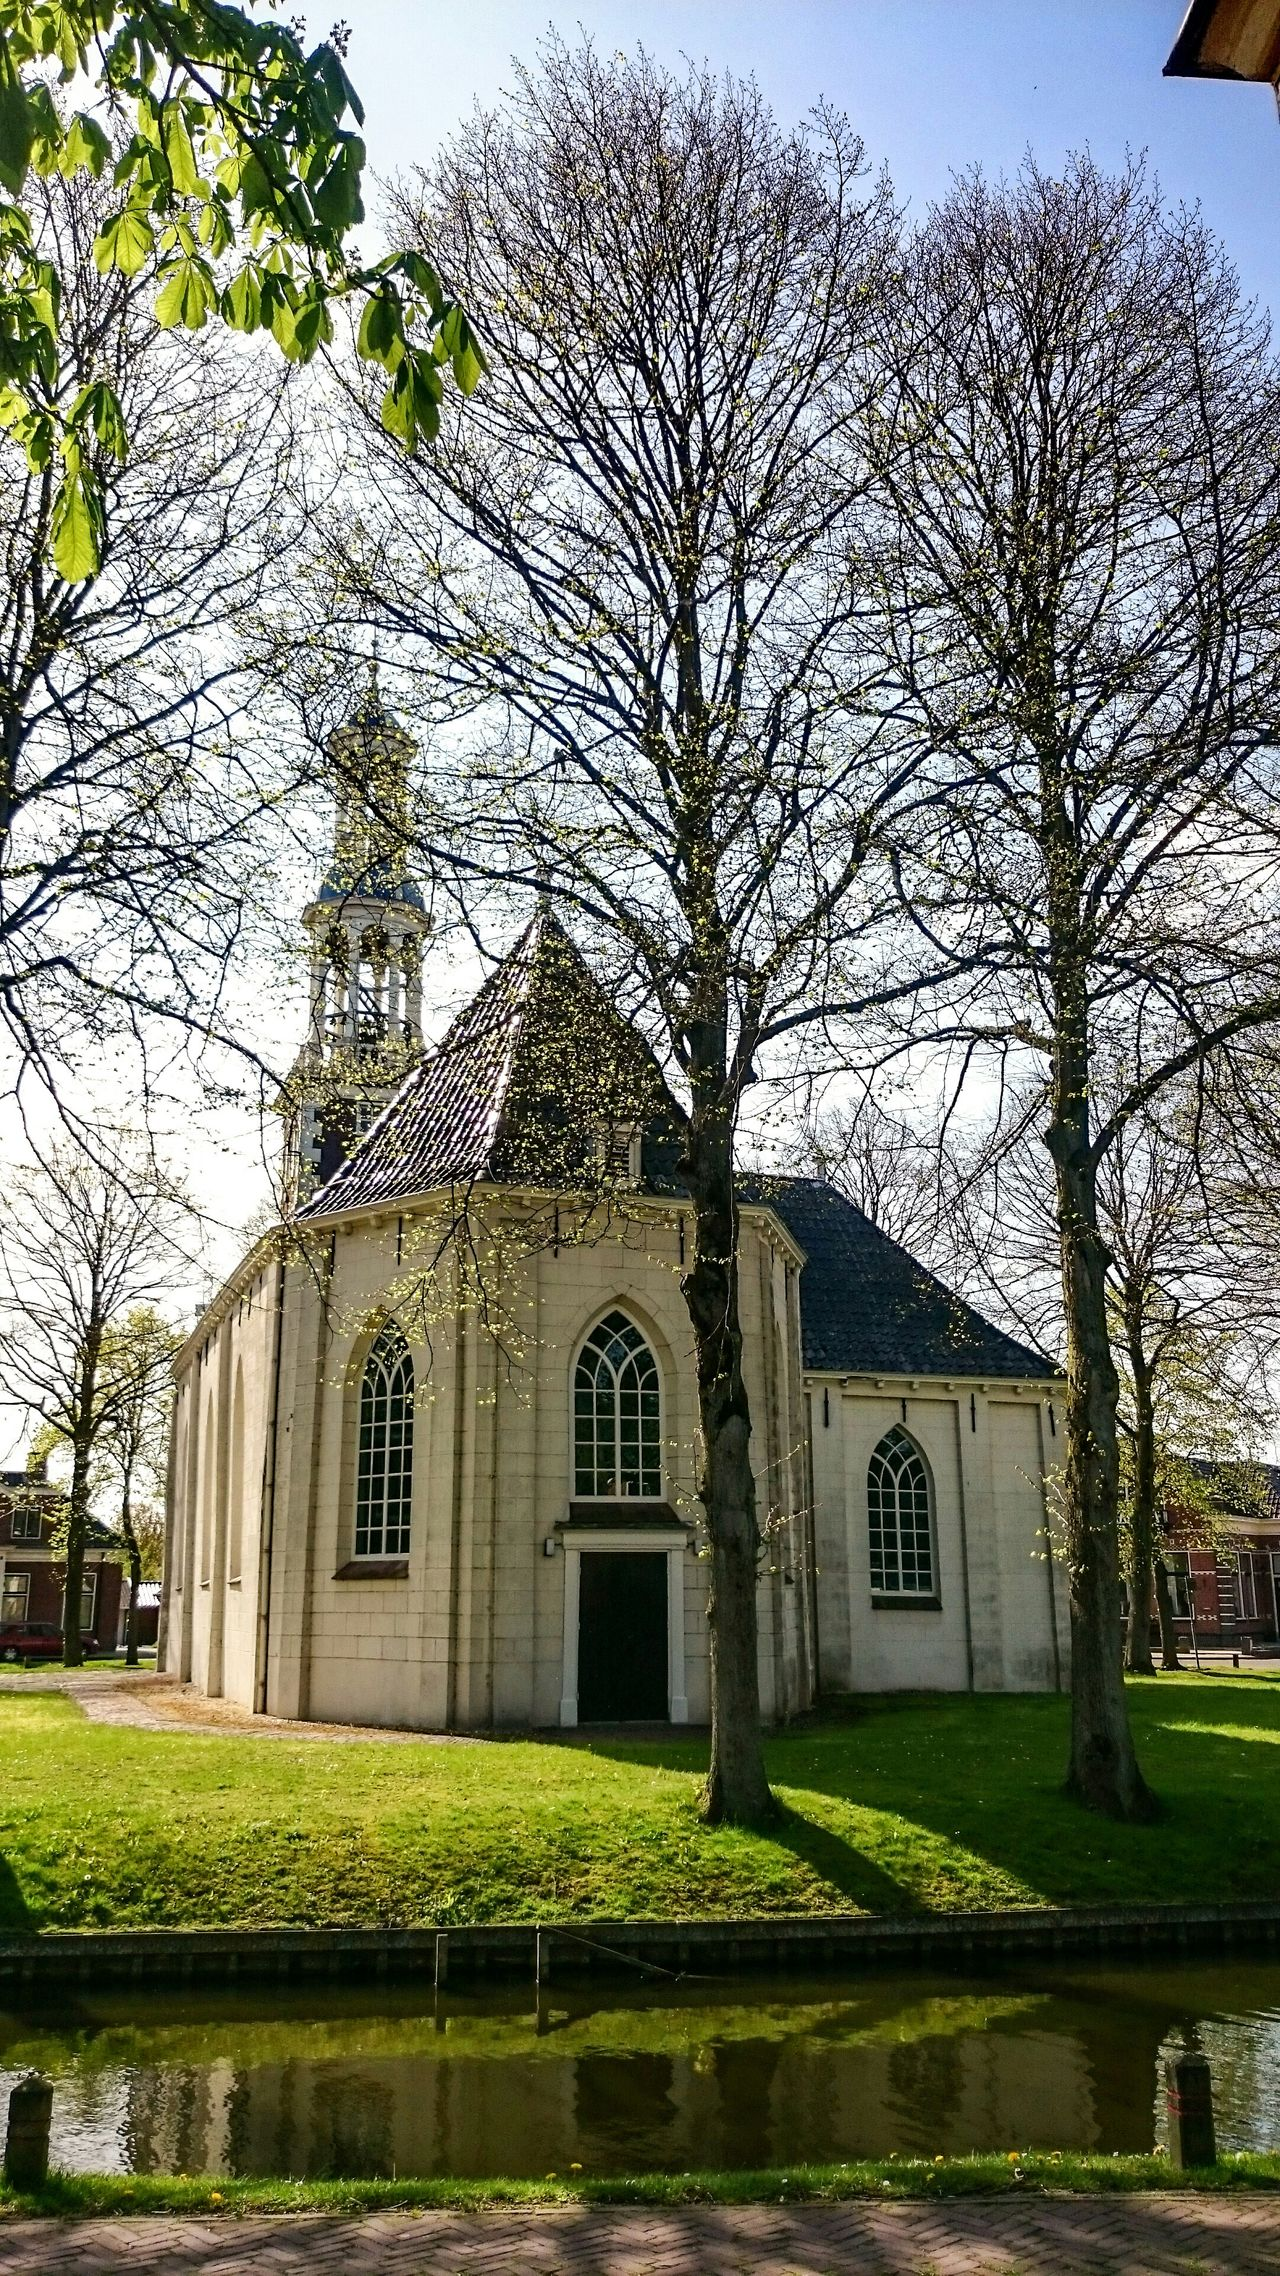 In My Village Spijk. Old Church surrounded by Trees, Sunshine Reflections on the roof. On a warm Sunday Afternoon